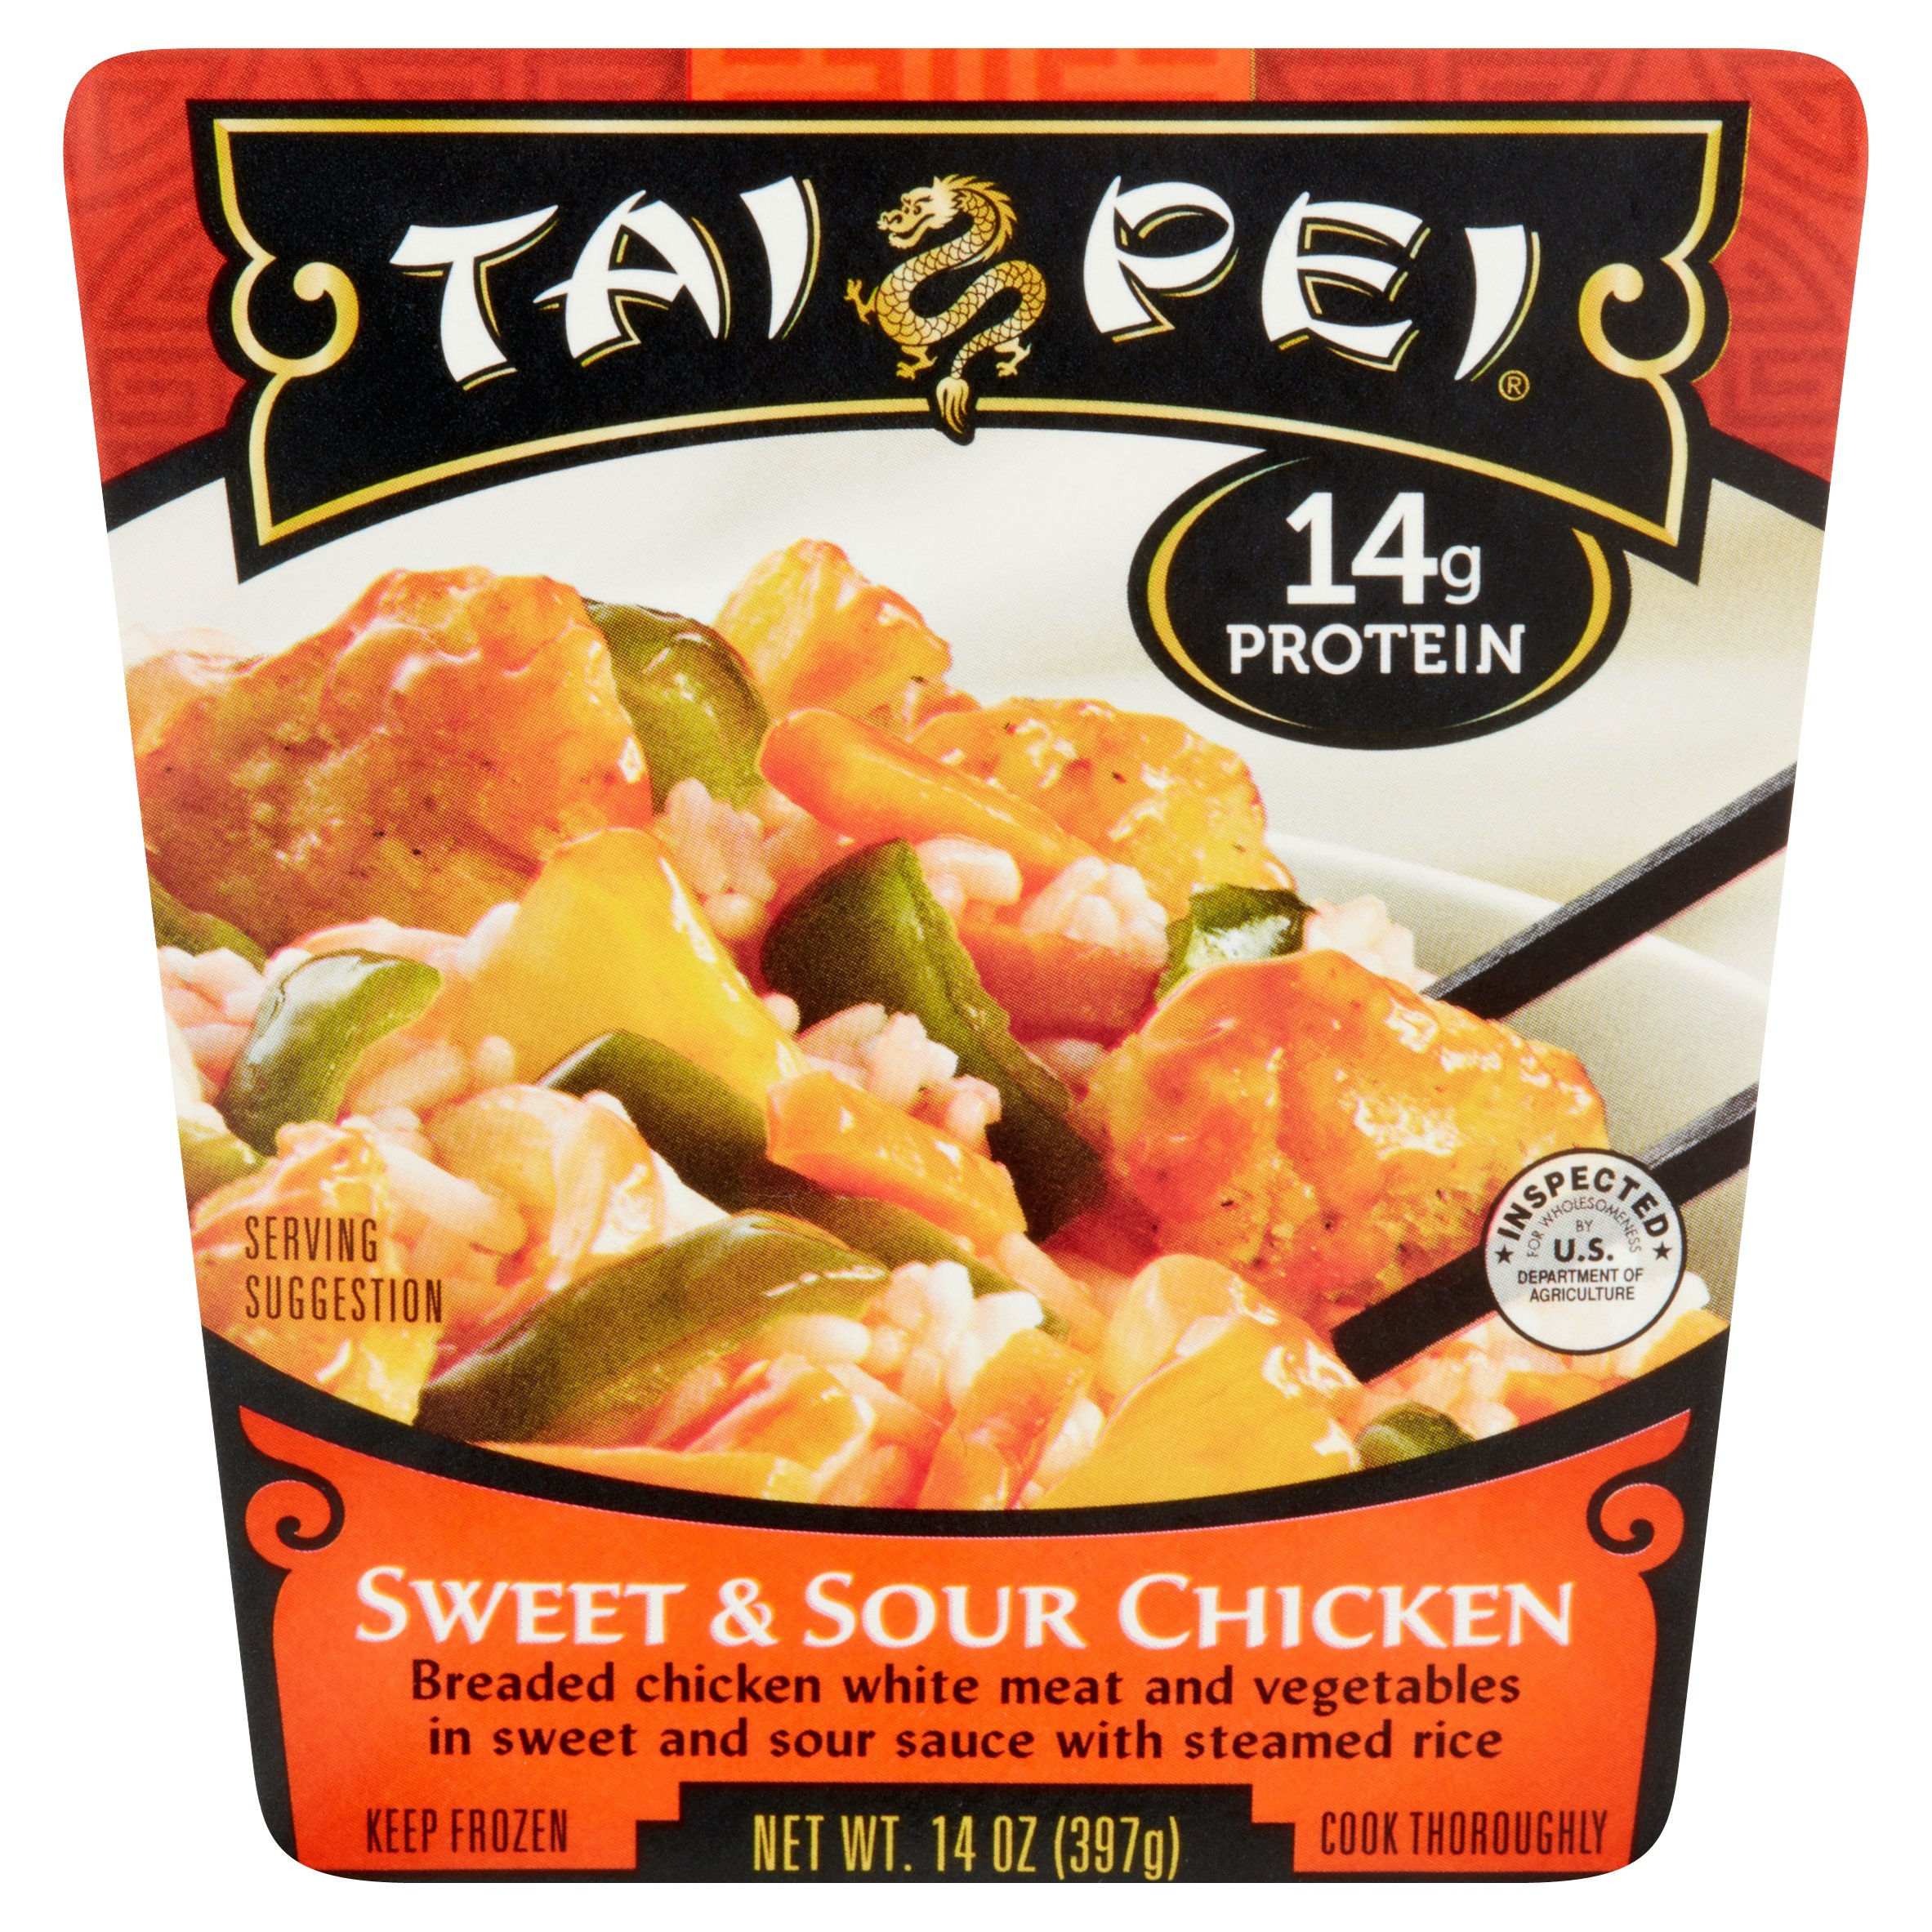 Taipei Sweet & Sour Chicken Meal, 14 oz